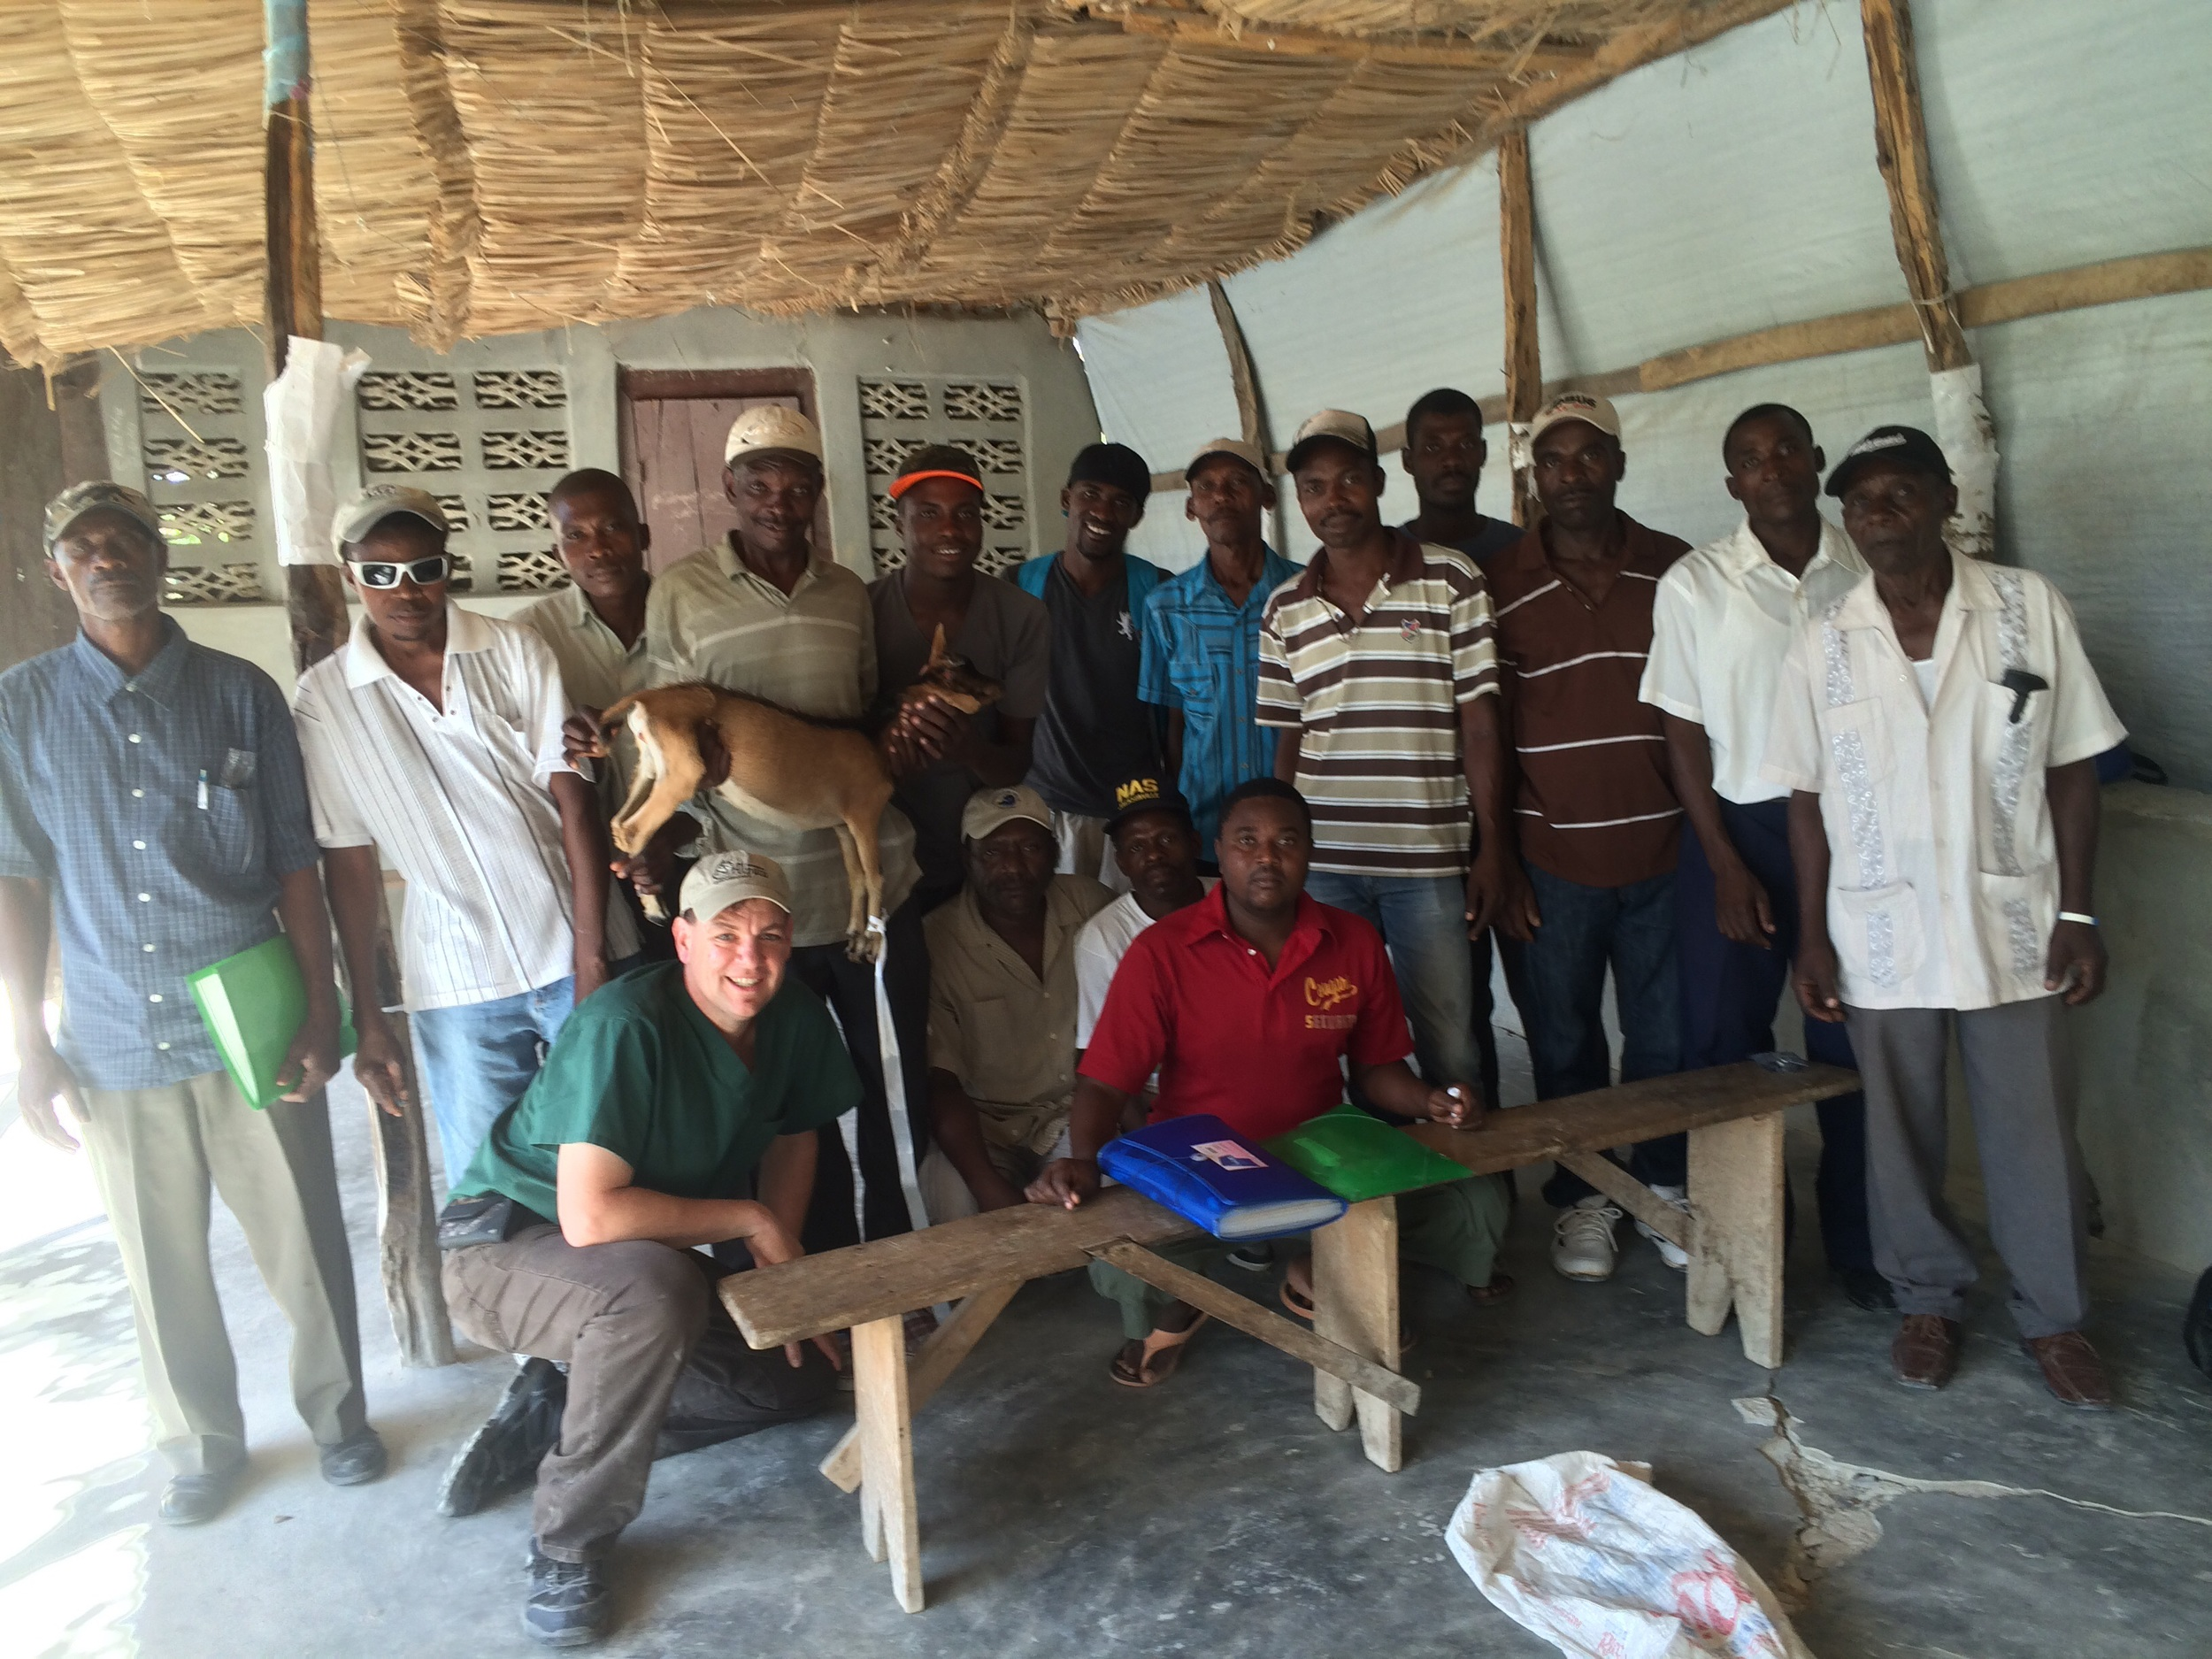 Haitian vet agents in Charye, Haiti along with the goat that was successfully delivered approximately 20 times during obstetrics training